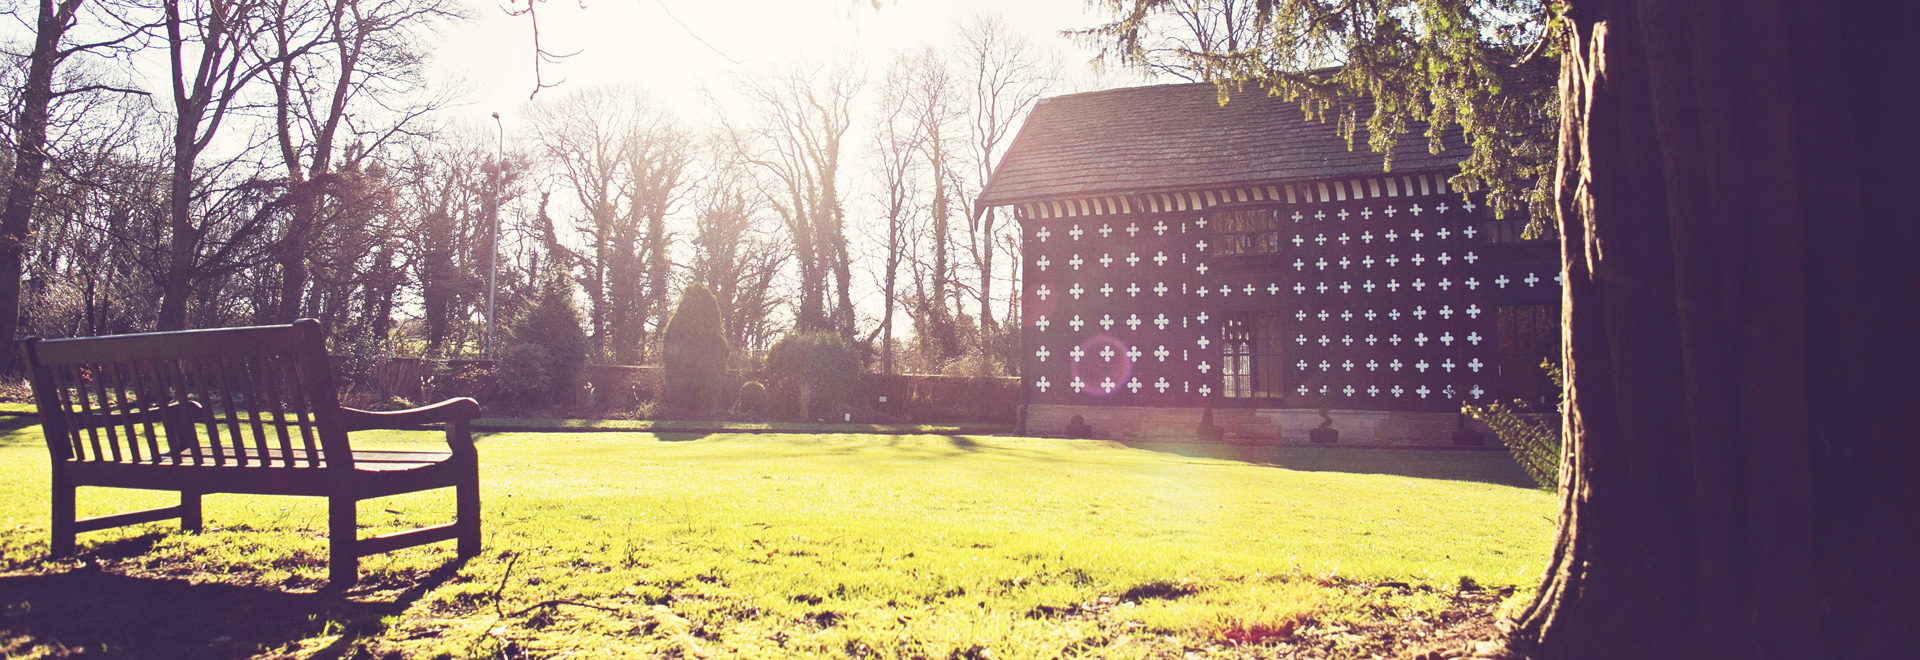 Weddings at Samlesbury Hall